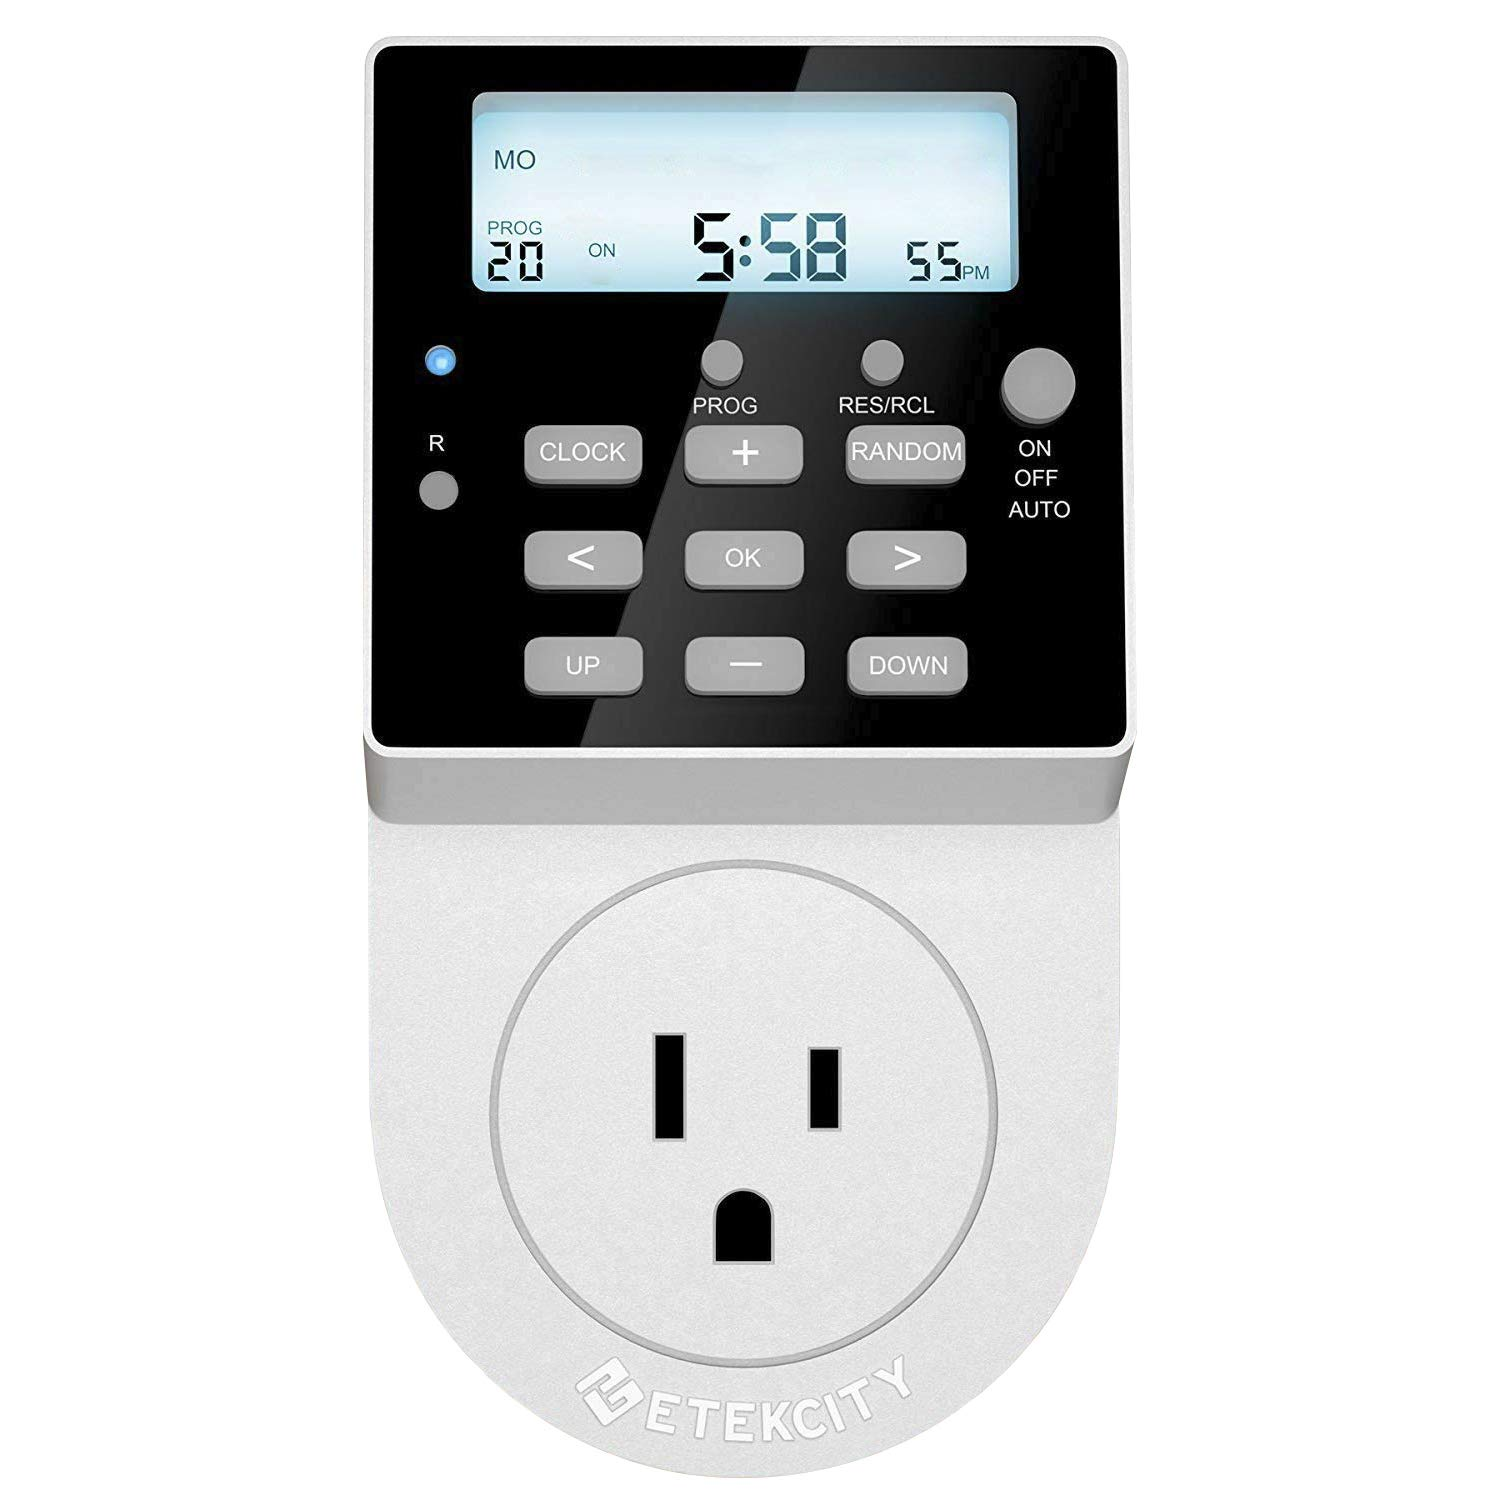 Etekcity Light Timer Outlet, Heavy Duty, 7 Day Timer, 20 Programmable Settings, Digital Switch with Backlight and Surge Protection, 15A/1800W